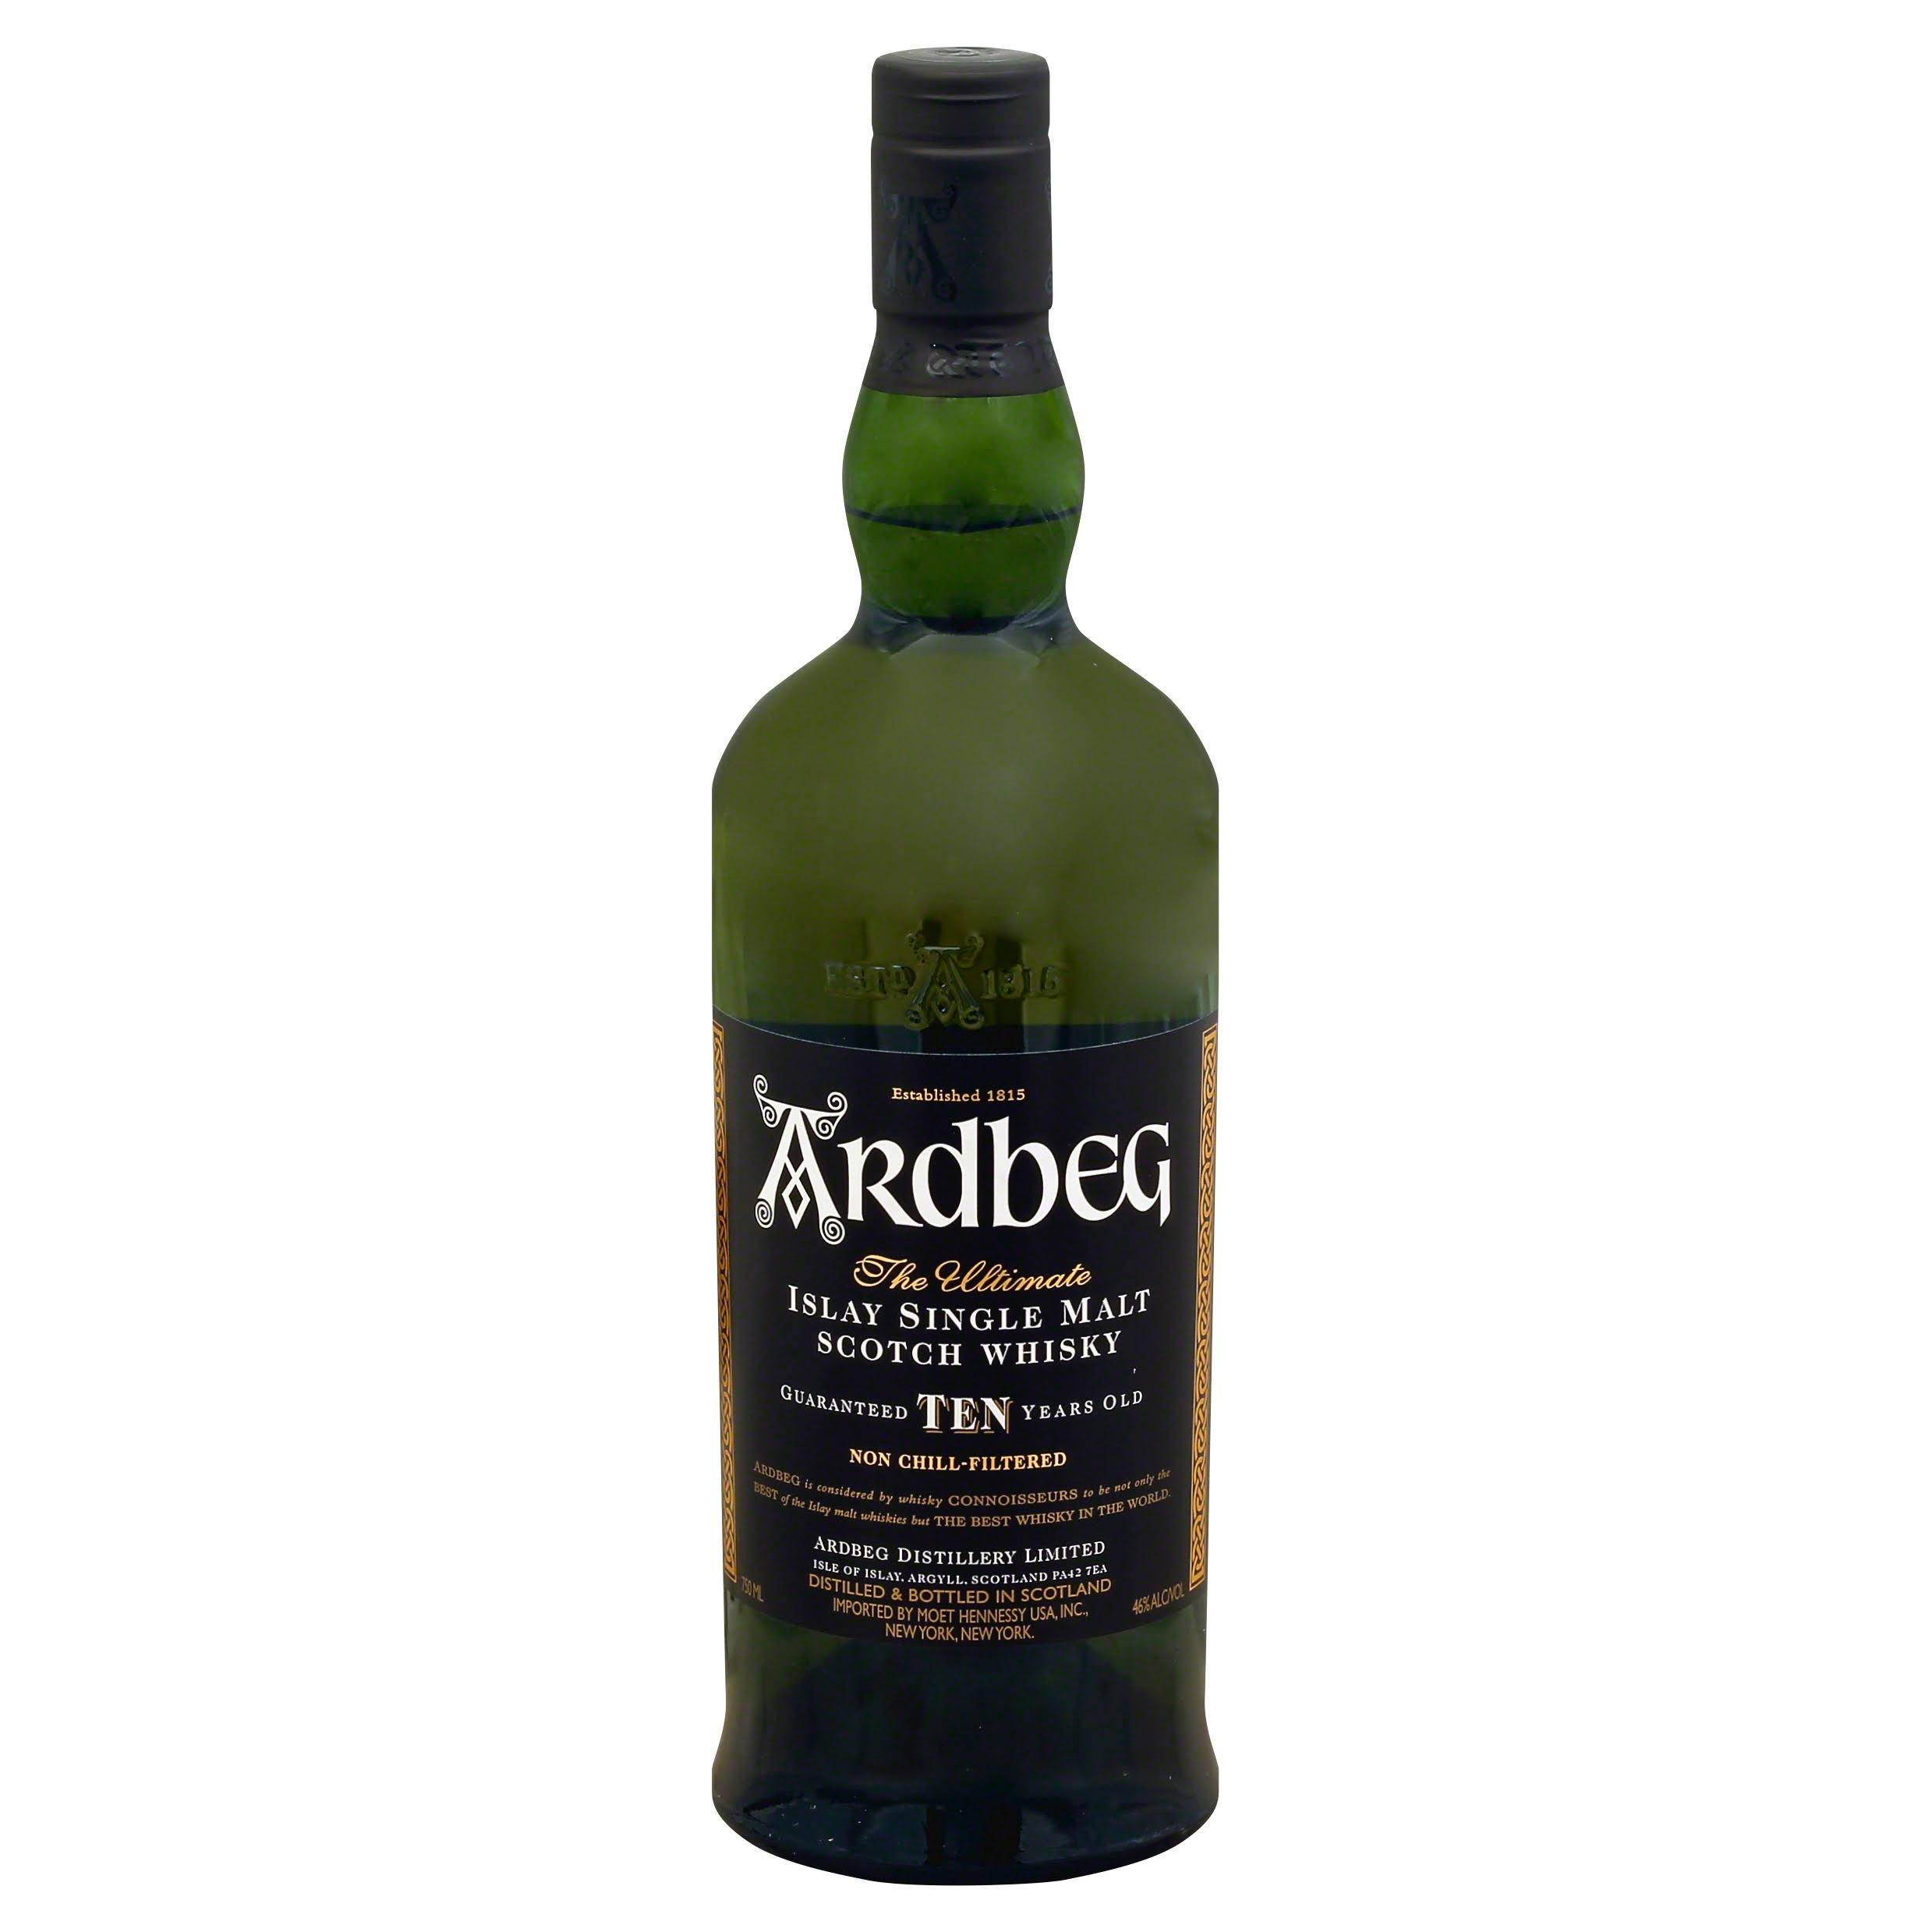 Ardbeg Scotch 10 Year Old Single Malt - United States